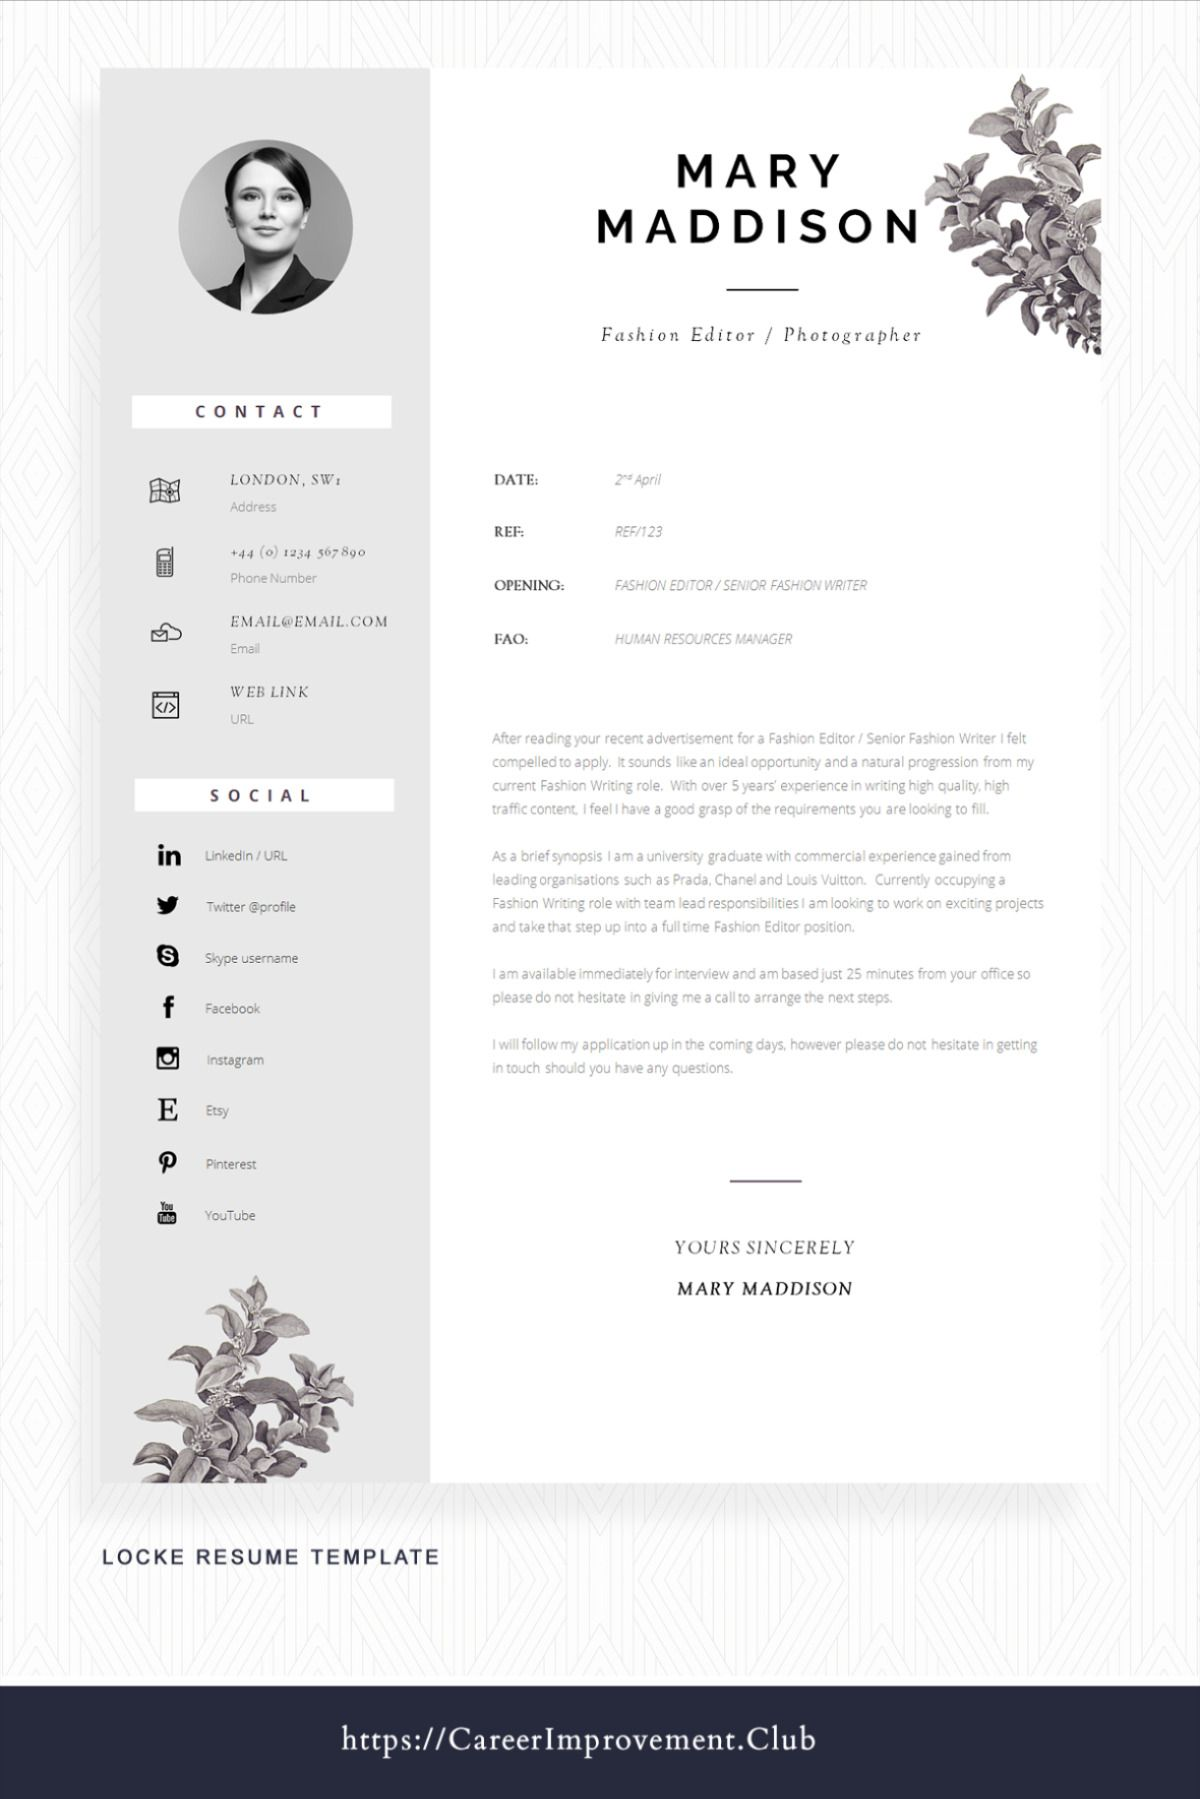 Professional Cv Design For Word Cover Letter Resume Advice Instant Download Mac Or Pc Resume Design Locke Cv Design Cv Design Professional Cv Template Professional